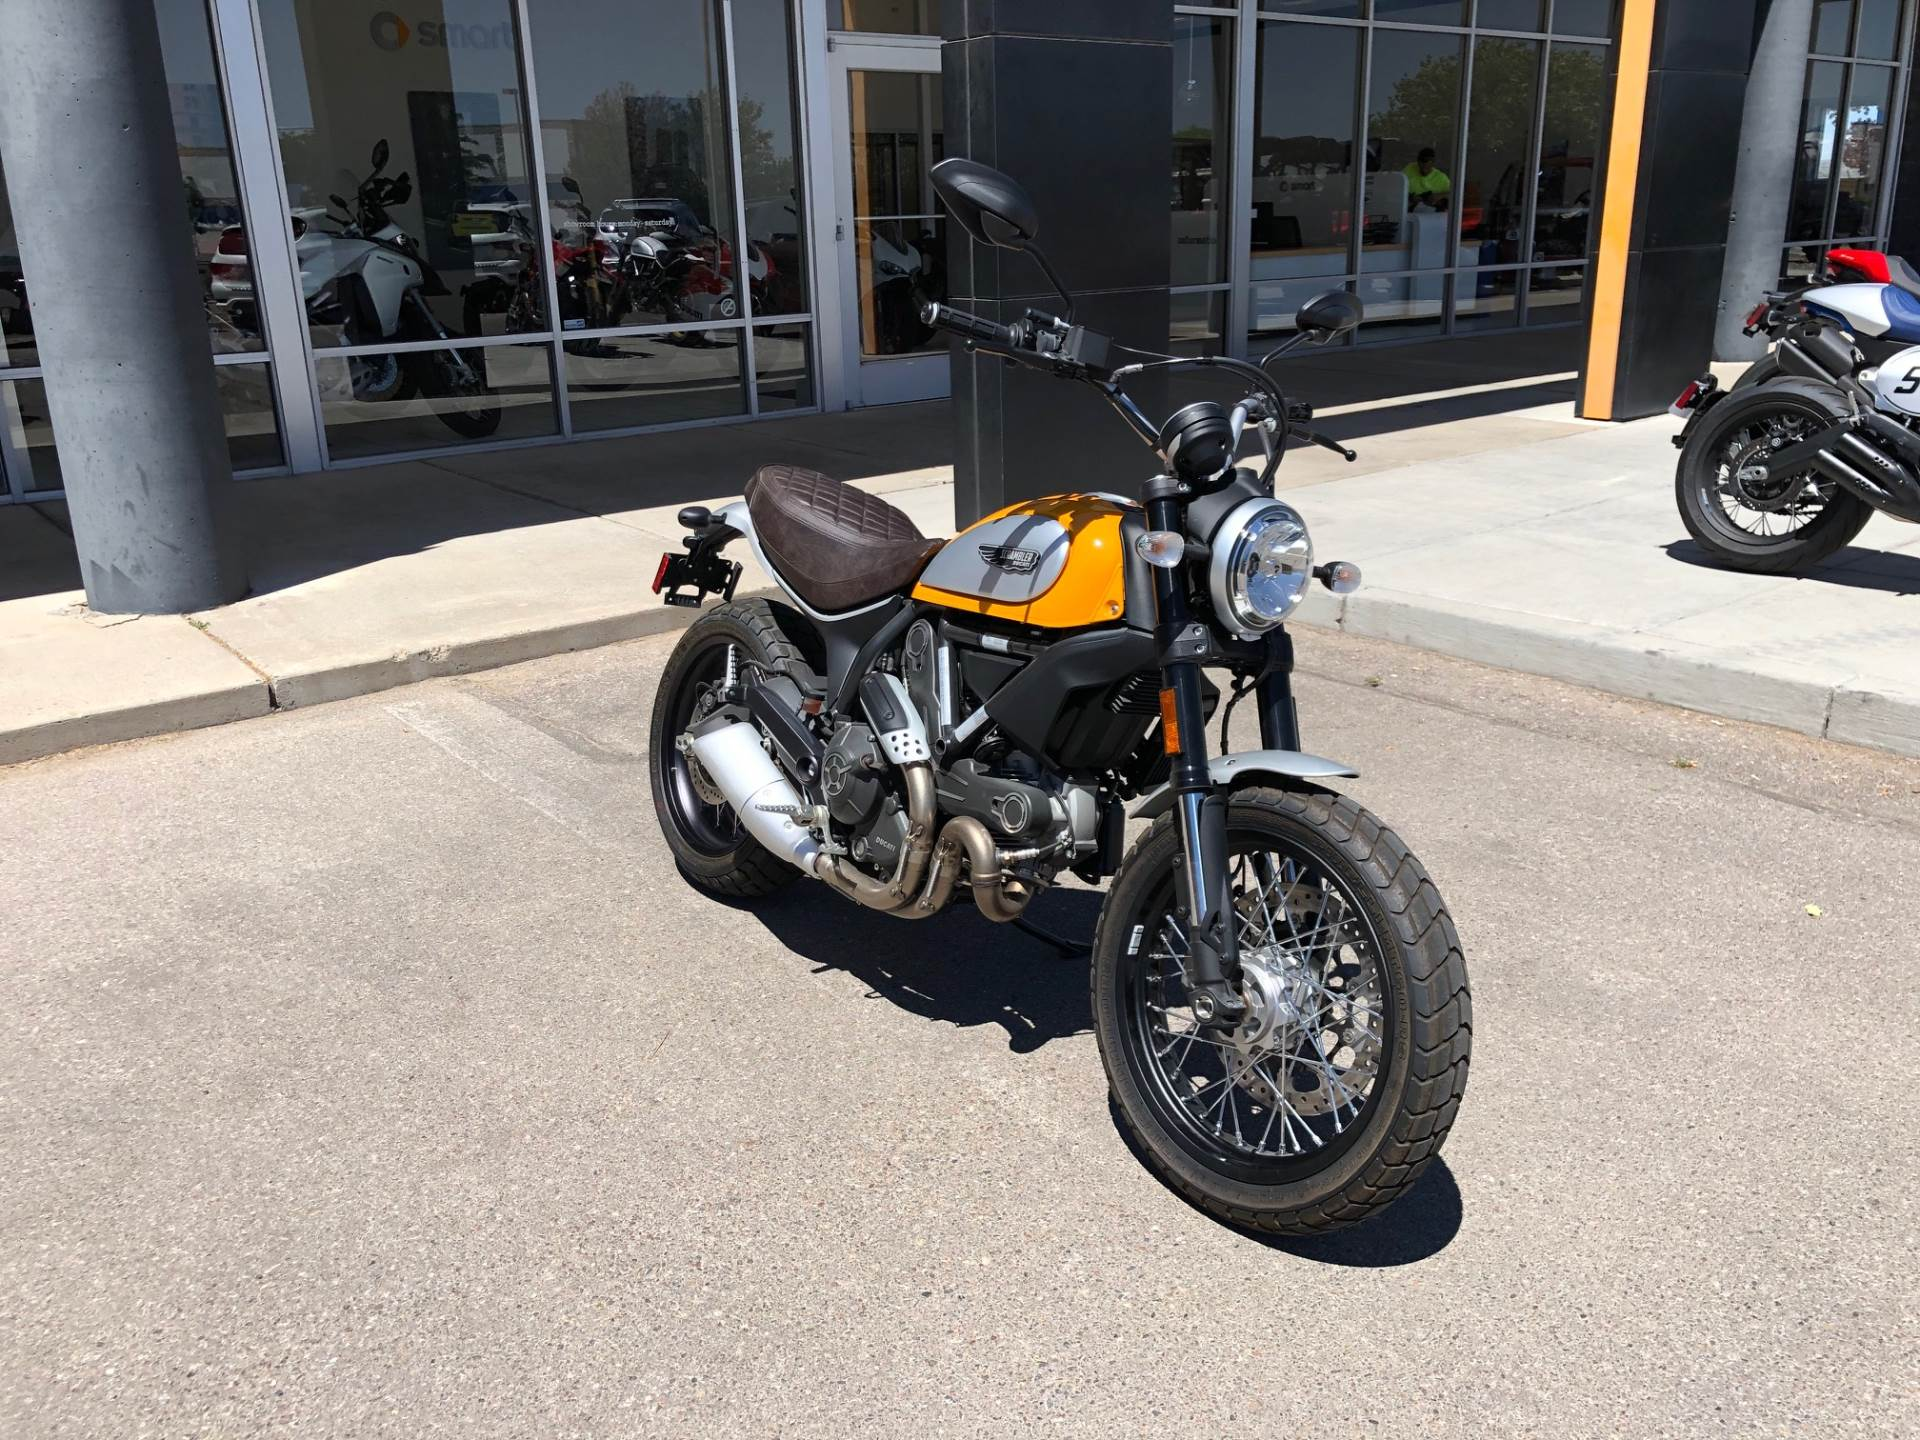 2016 Ducati Scrambler Classic in Albuquerque, New Mexico - Photo 8